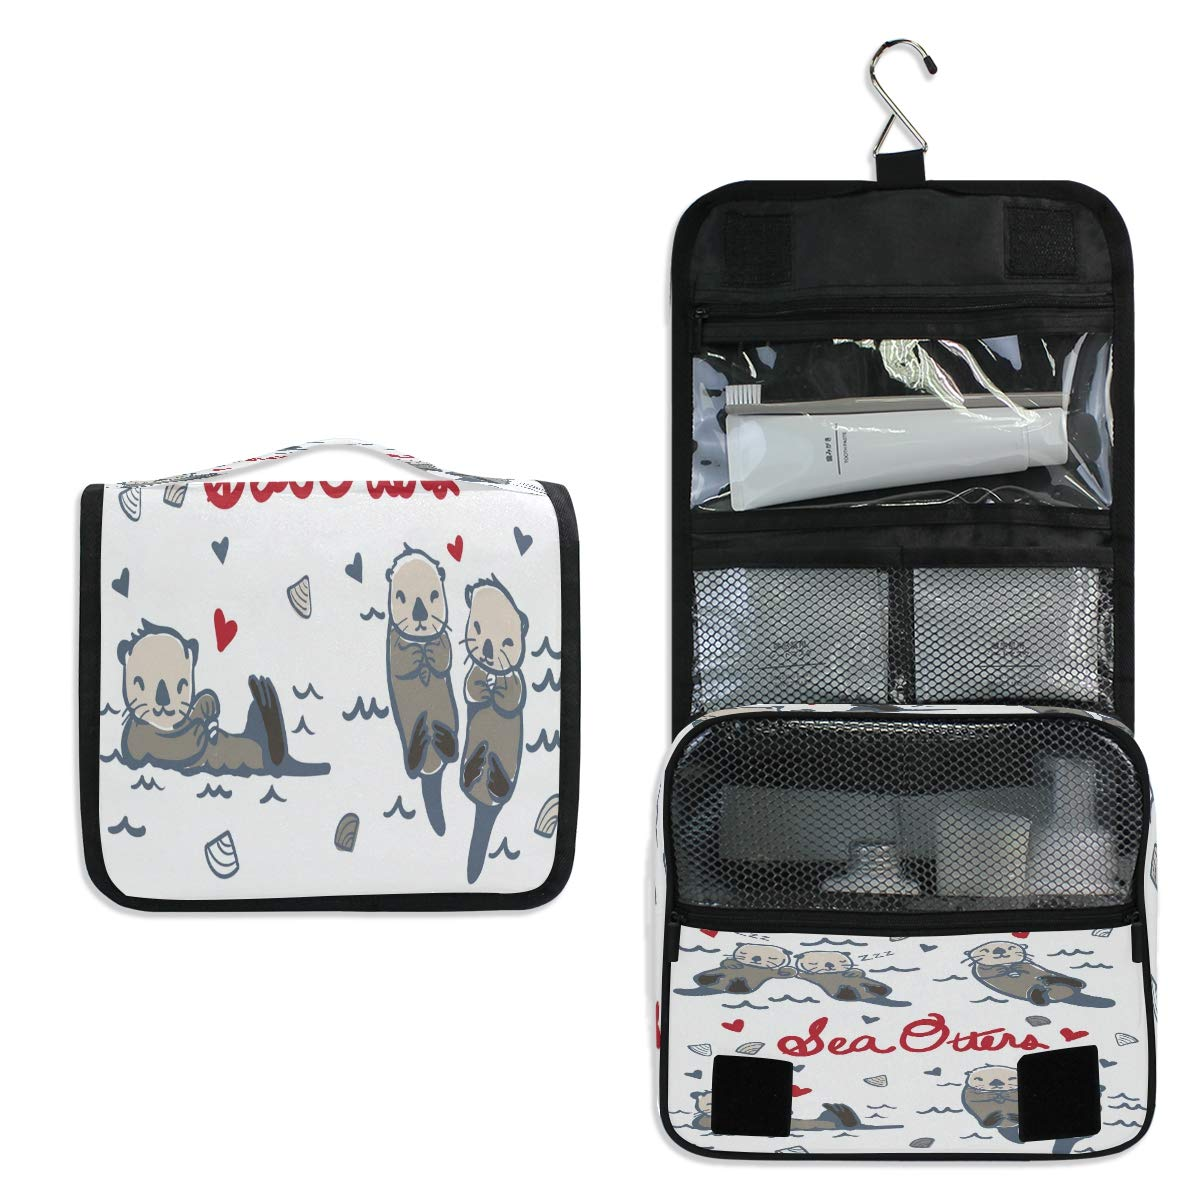 Hanging Toiletry Bag, Hand Drawn Sea Otters Waterproof Quilted Wash Gargle Bag Portable Travel Bathroom Shower Bags Deluxe Large Makeup Brush Case Capacity Pouch for Men and Woman